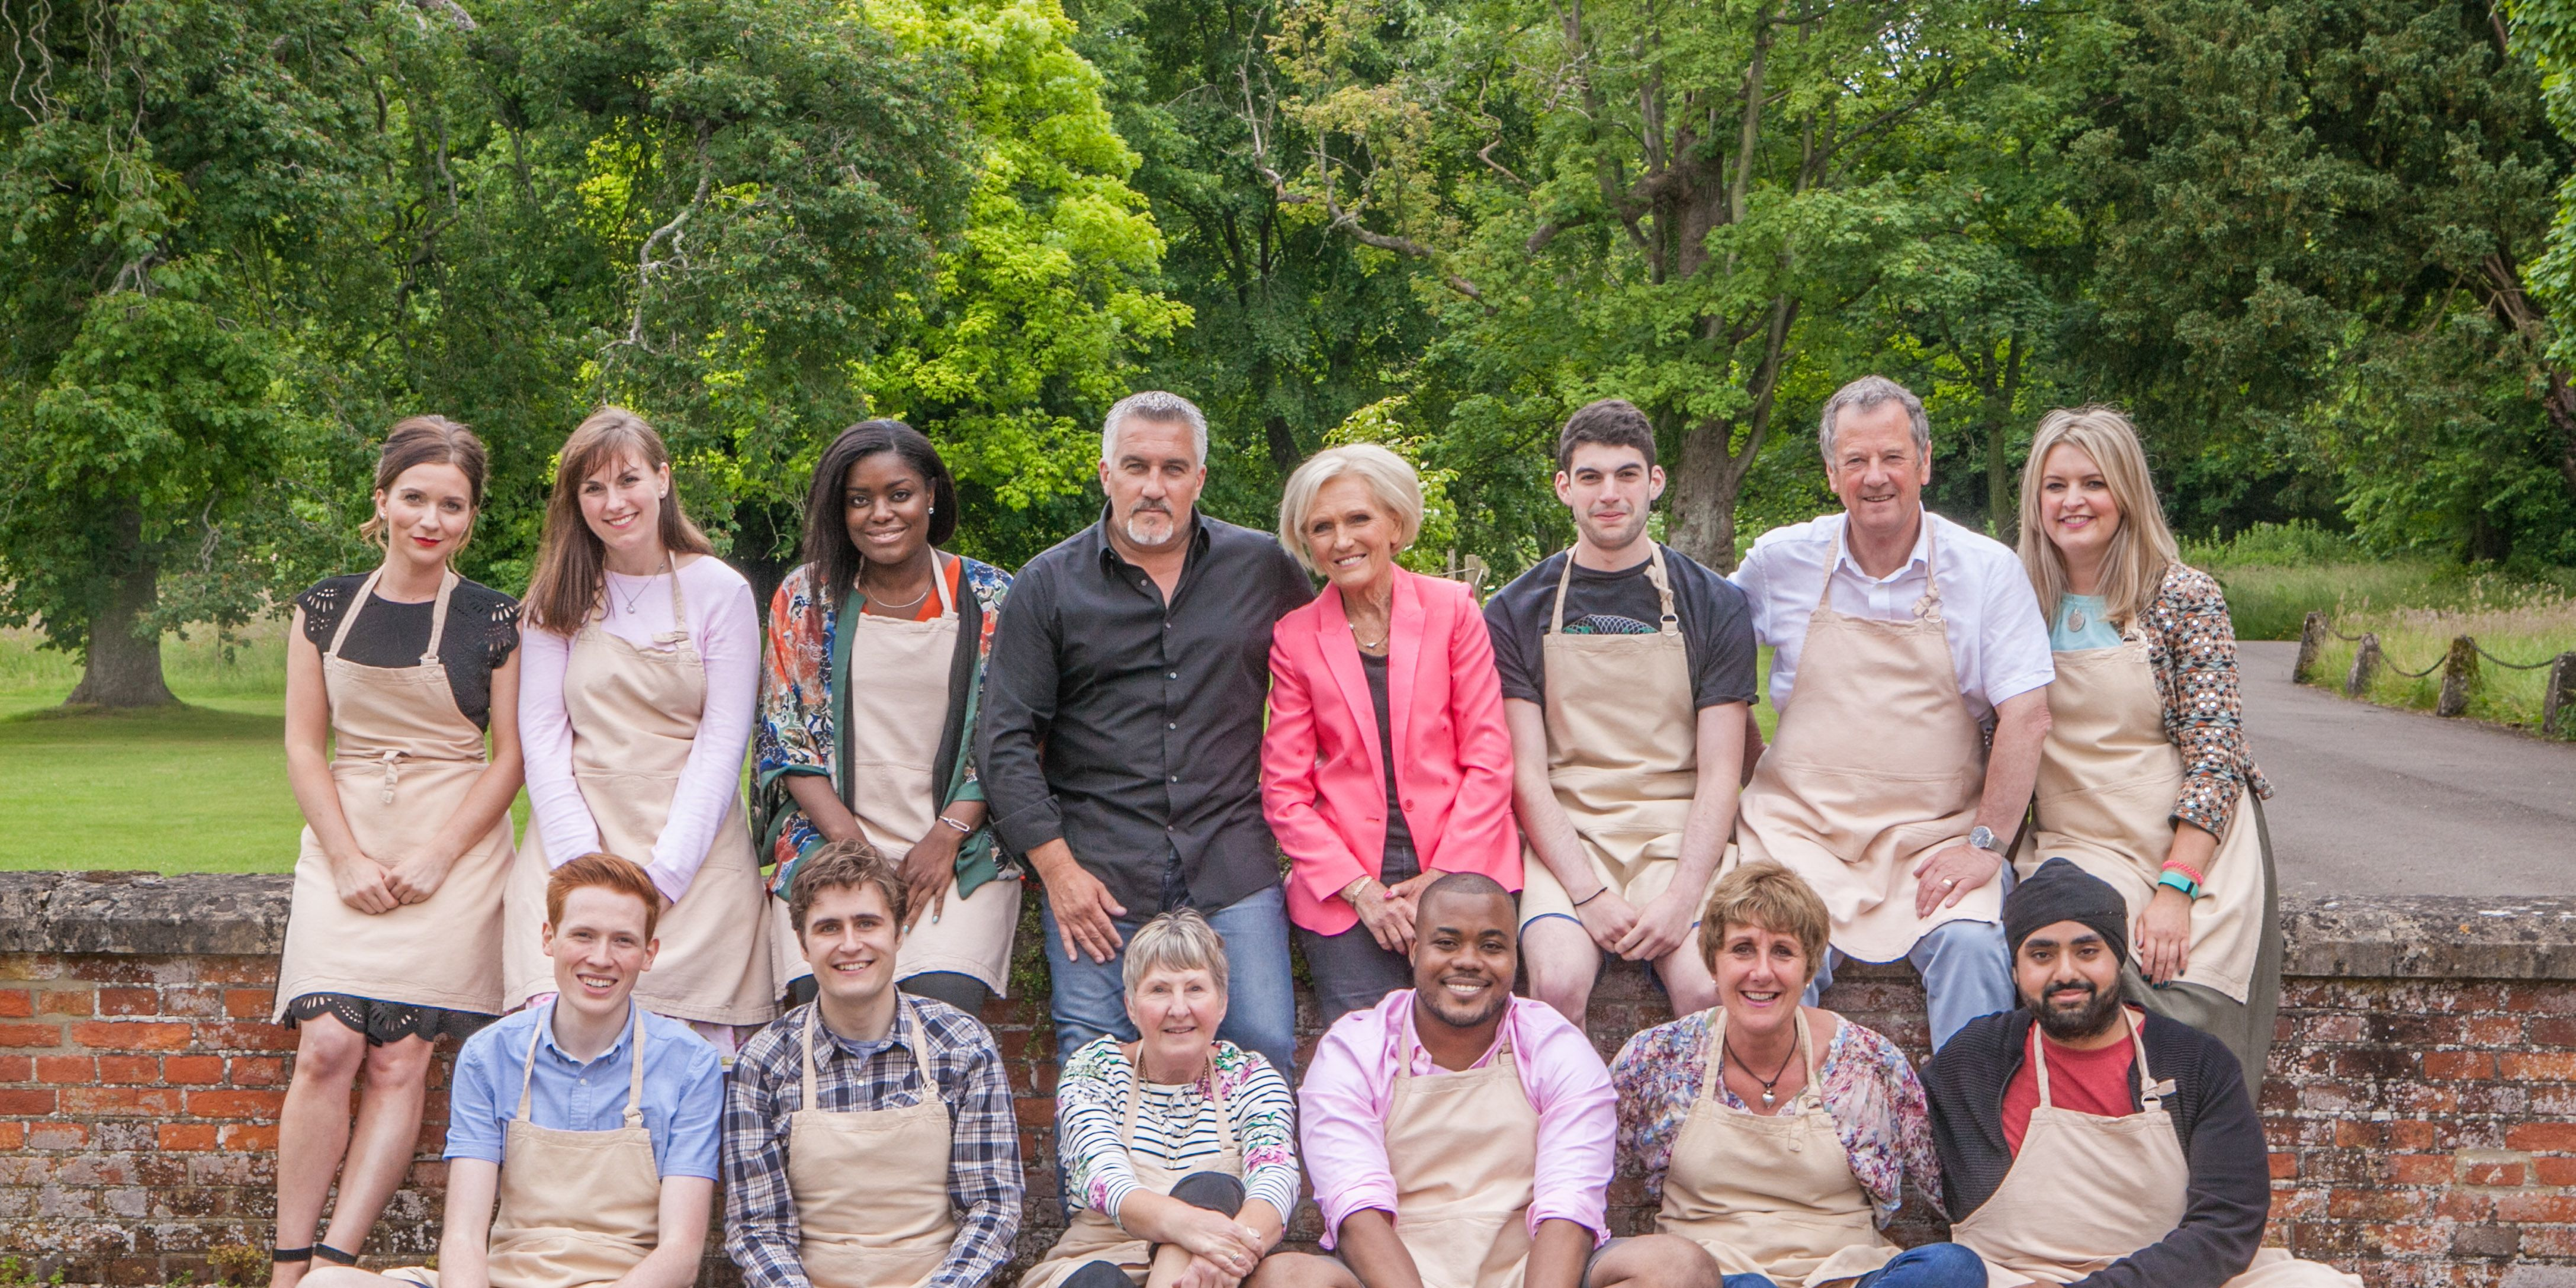 Great British Bake Off, GBBO, 2016 contestants and judges, Mary Berry, Paul Hollywood